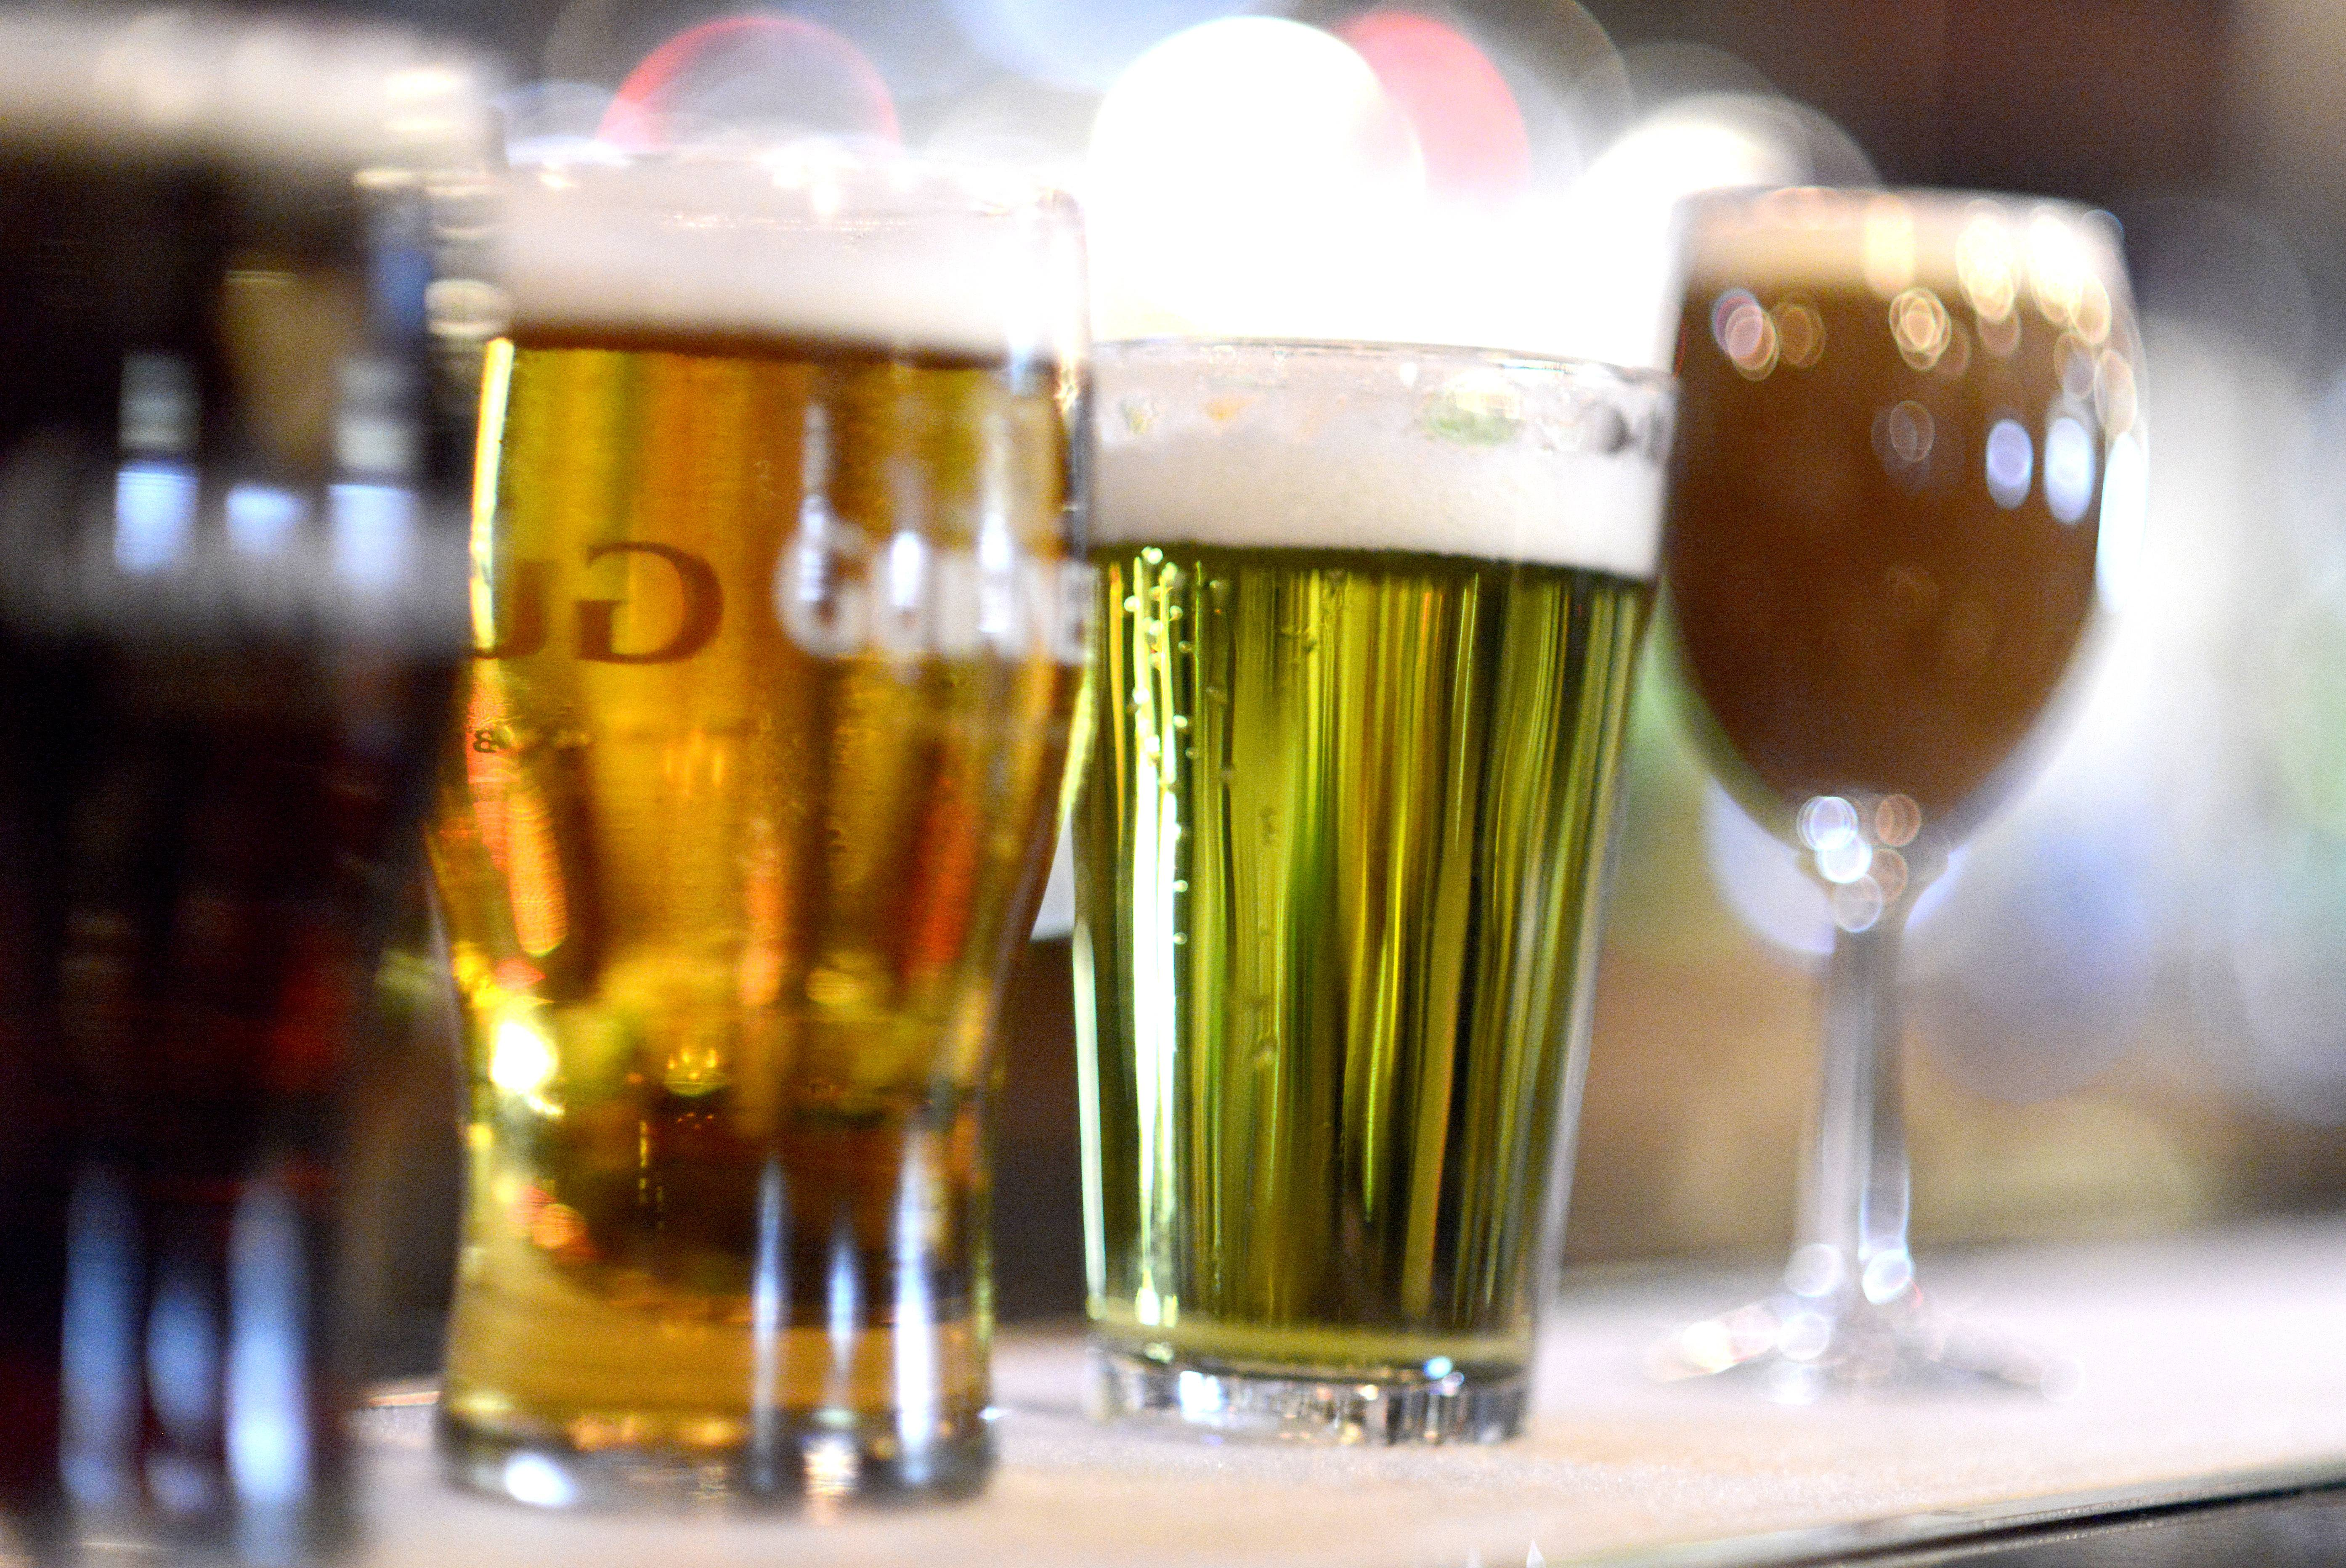 A variety of well known Irish beers, including one dyed green, are available at Claddagh Irish Pub.